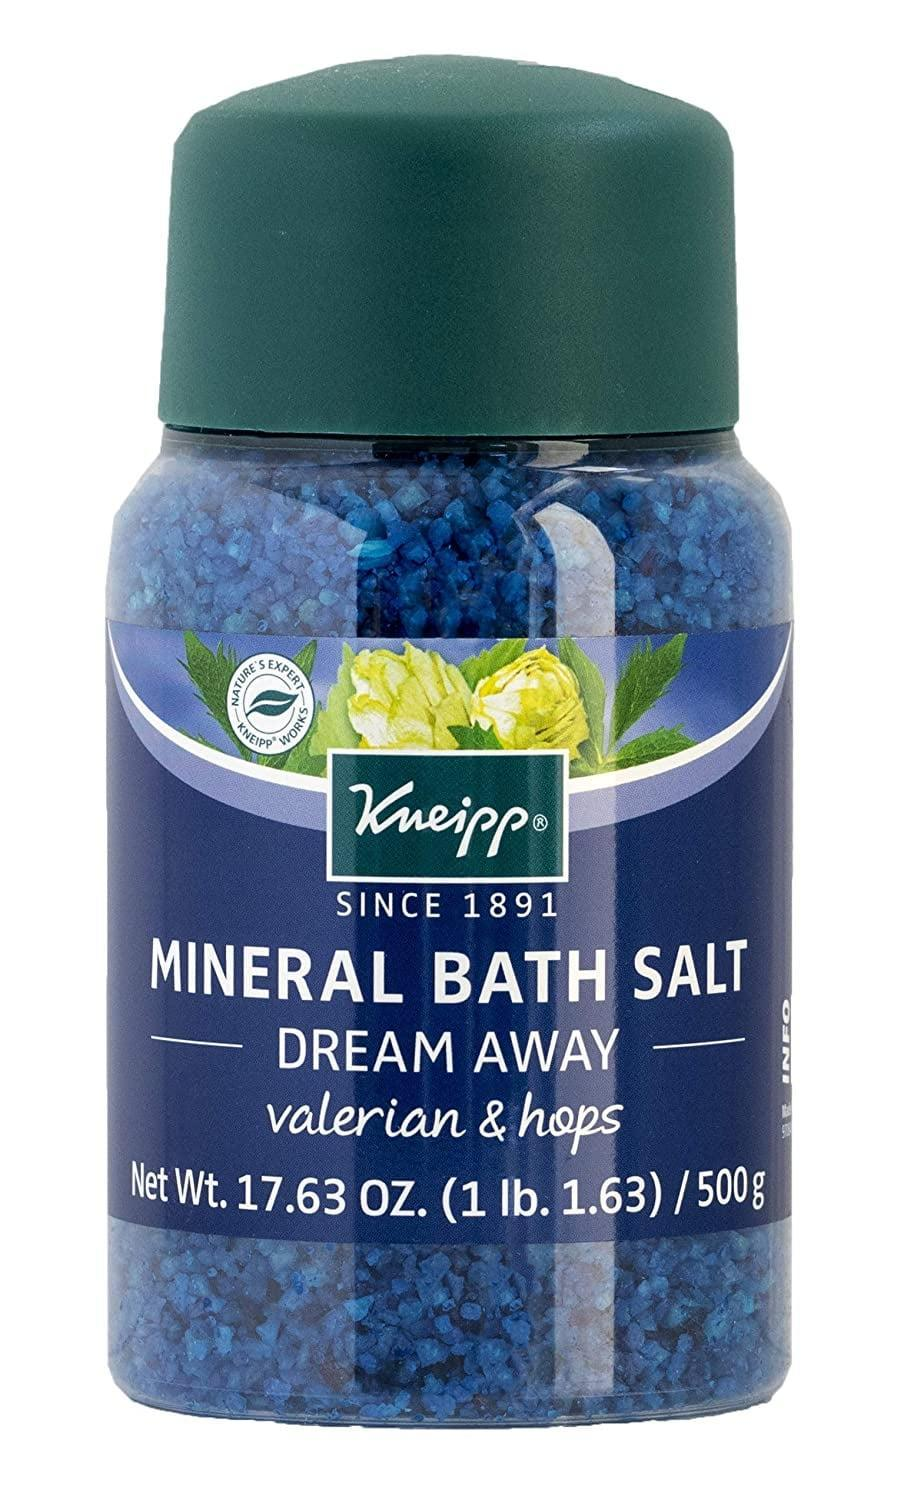 """<p>The valerian in this <span>Kneipp Dream Away Mineral Bath Salt</span> ($20) may just <a href=""""https://www.popsugar.com/fitness/best-supplements-for-anxiety-48178282"""" class=""""link rapid-noclick-resp"""" rel=""""nofollow noopener"""" target=""""_blank"""" data-ylk=""""slk:help quiet those racing thoughts"""">help quiet those racing thoughts</a> that keep you up at night.</p>"""